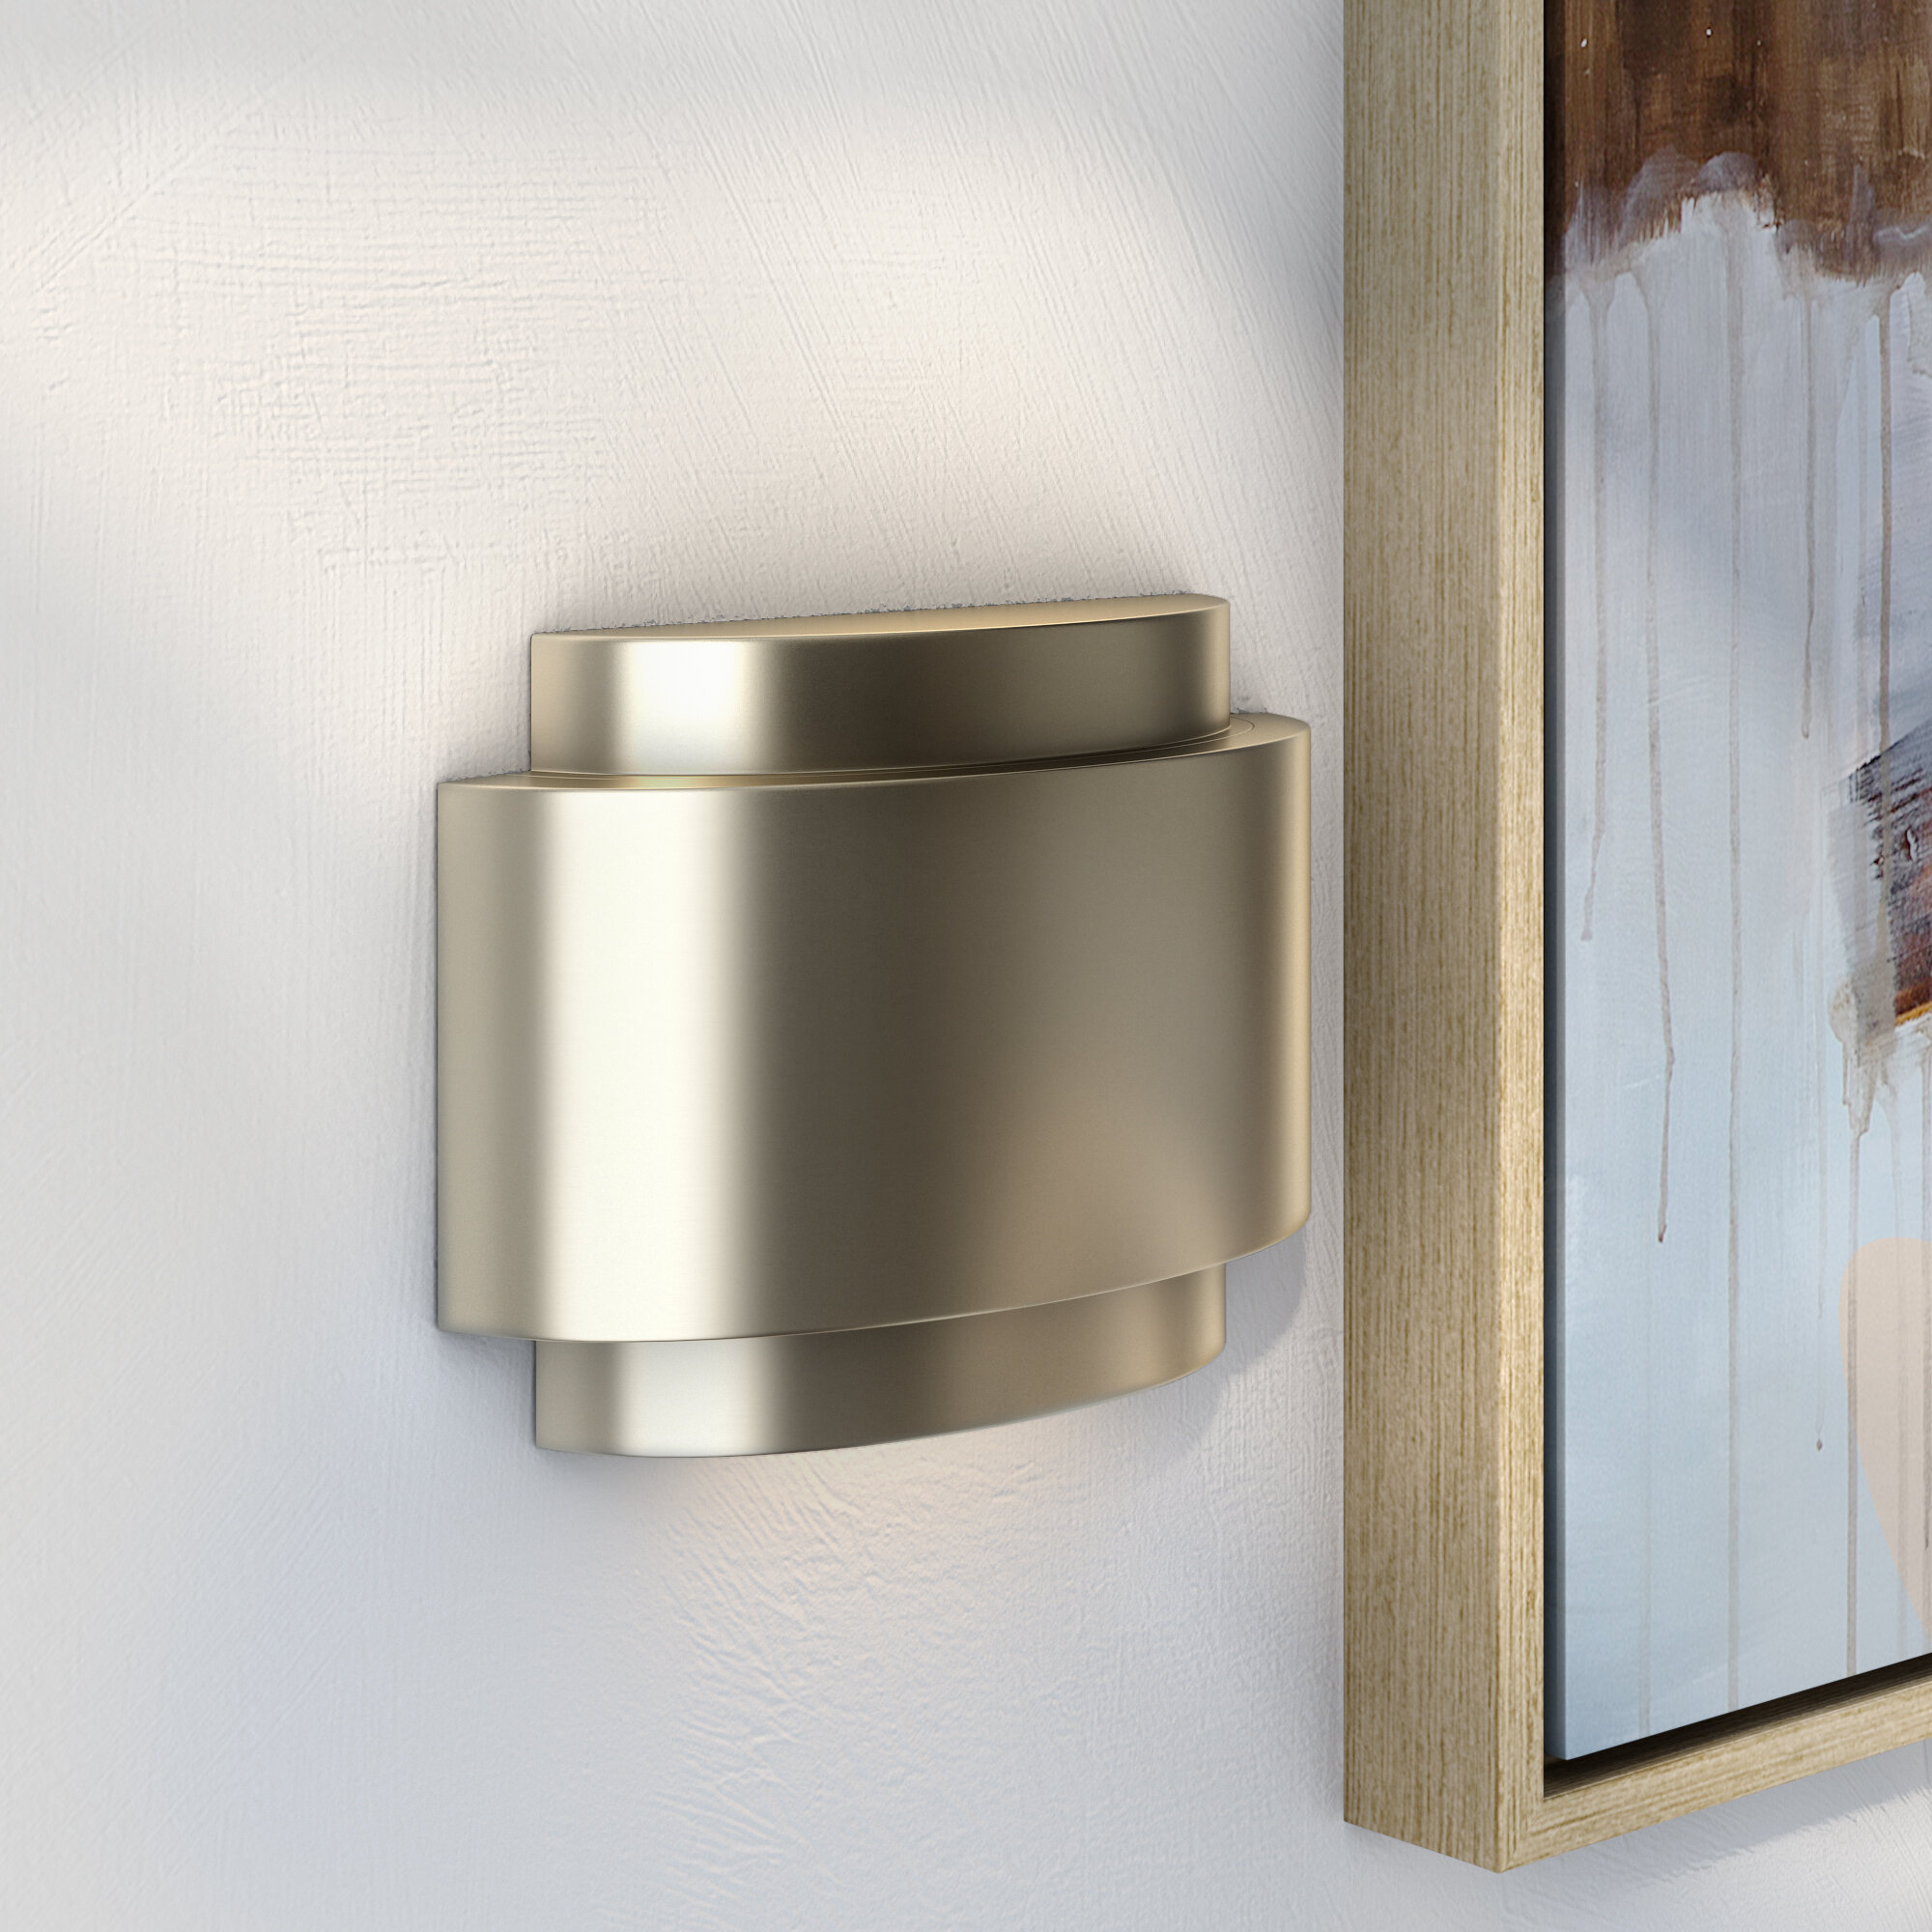 Contemporary Door Chime In Stainless Steel